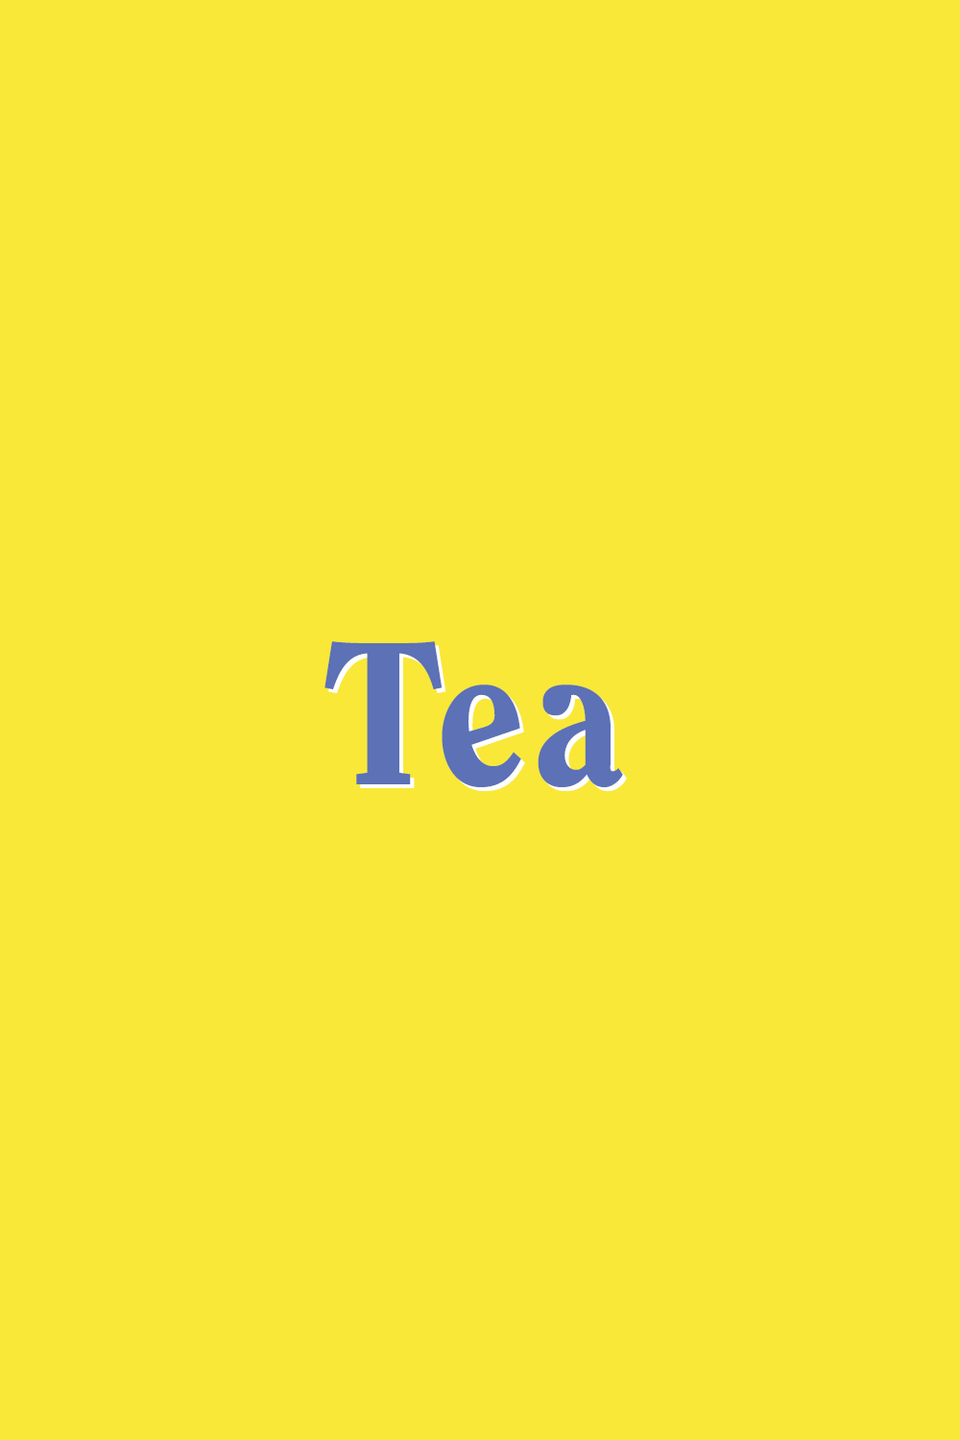 "<p>Tea is all about exchanging hot gossip. You can get tea, <a href=""https://www.oprahdaily.com/entertainment/tv-movies/a23080598/season-3-dear-white-people/"" rel=""nofollow noopener"" target=""_blank"" data-ylk=""slk:spill tea"" class=""link rapid-noclick-resp"">spill tea</a>, and give tea. Often, the term is simply interchangeable with the letter ""T."" This slang term—like so many on this list—derives from '80s and '90s <a href=""https://www.oprahdaily.com/life/a23601818/queer-cultural-appropriation-definition/"" rel=""nofollow noopener"" target=""_blank"" data-ylk=""slk:ball culture"" class=""link rapid-noclick-resp"">ball culture</a>, which is where LGBTQ people performed in drag competitions to celebrate their queerness. John Berendt's 1999 <em><a href=""https://www.amazon.com/Midnight-Garden-Good-Evil-Savannah/dp/0679751521?tag=syn-yahoo-20&ascsubtag=%5Bartid%7C10063.g.36061267%5Bsrc%7Cyahoo-us"" rel=""nofollow noopener"" target=""_blank"" data-ylk=""slk:Midnight in the Garden of Good and Evil"" class=""link rapid-noclick-resp"">Midnight in the Garden of Good and Evil</a></em> is <a href=""https://www.merriam-webster.com/words-at-play/tea-slang-meaning-origin"" rel=""nofollow noopener"" target=""_blank"" data-ylk=""slk:often cited"" class=""link rapid-noclick-resp"">often cited</a> for its early use of the term as well. </p>"